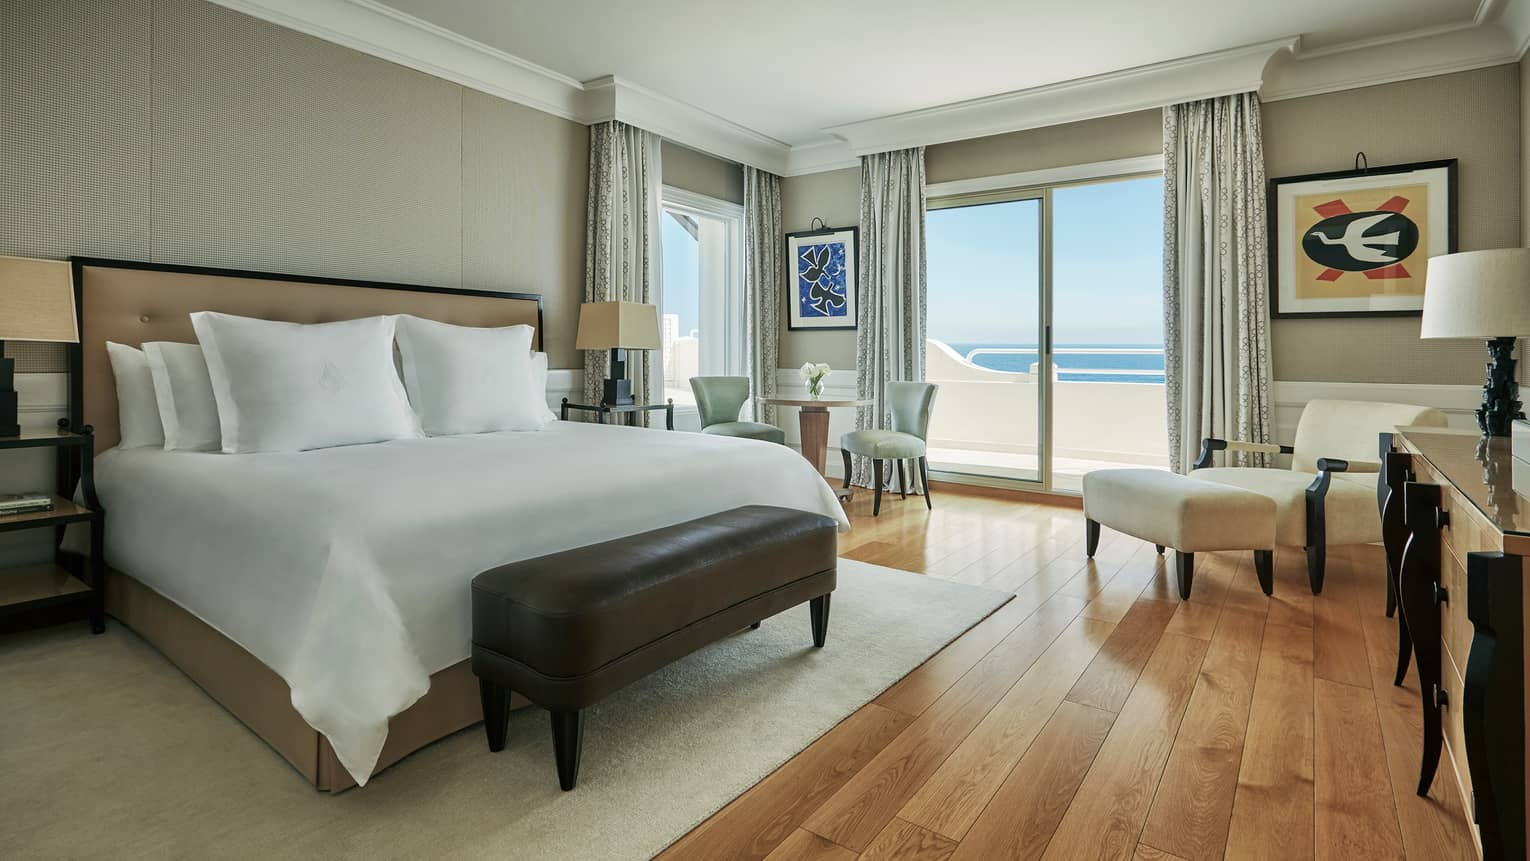 Palace Sea-View room with white bed, leather bench, dining table, armchair by balcony